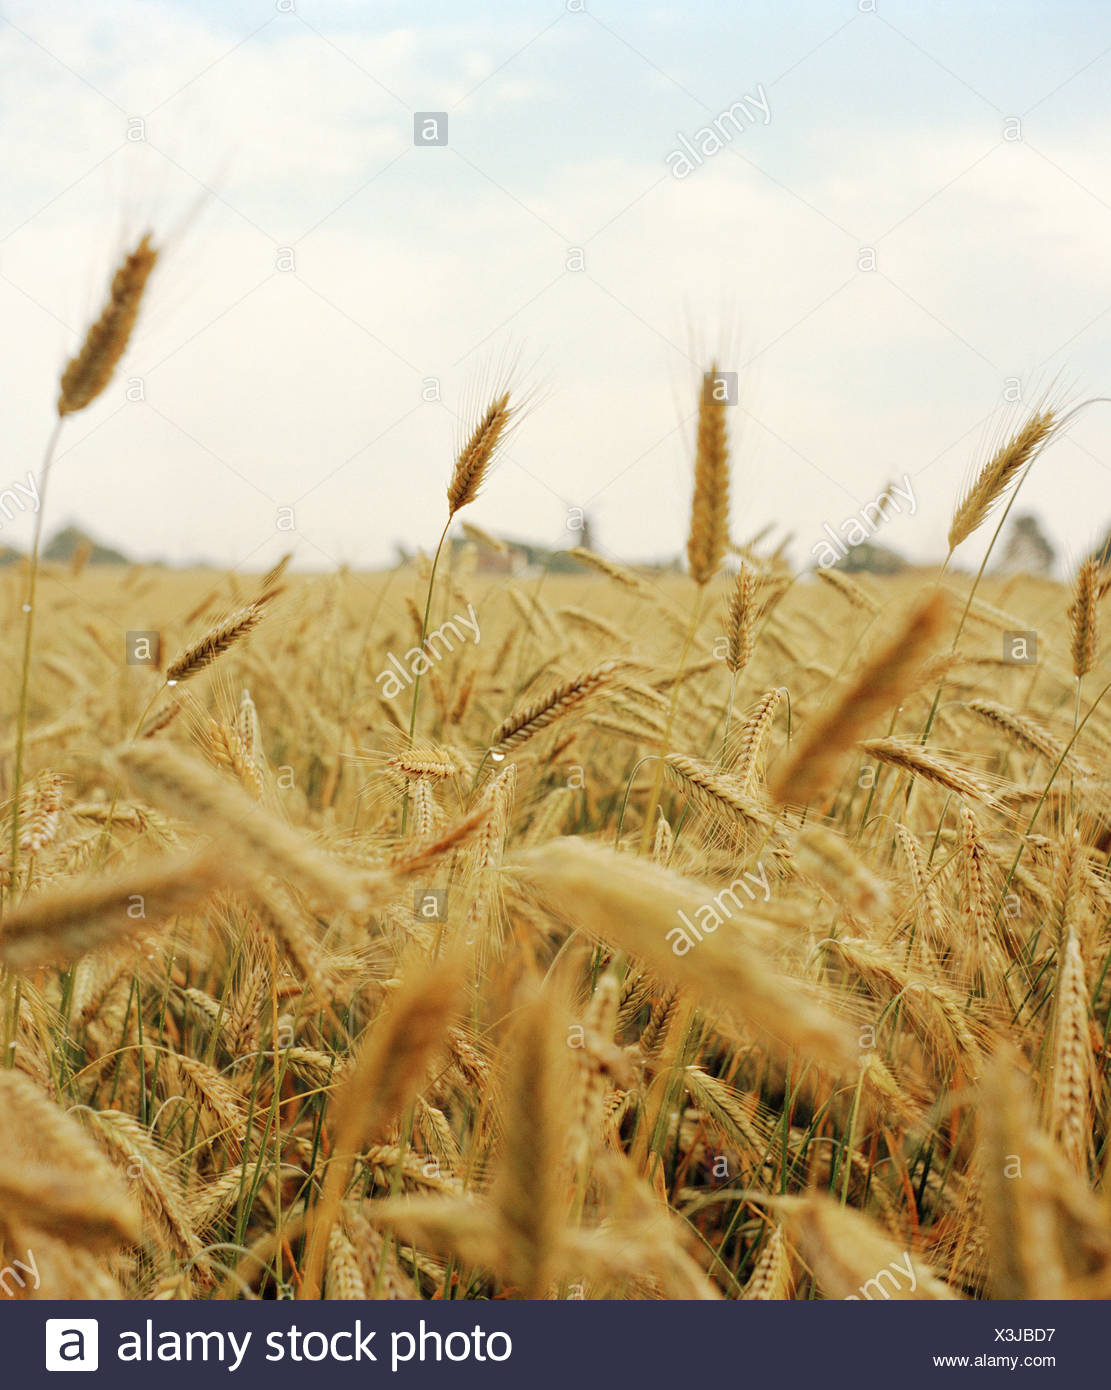 A field of grain. - Stock Image